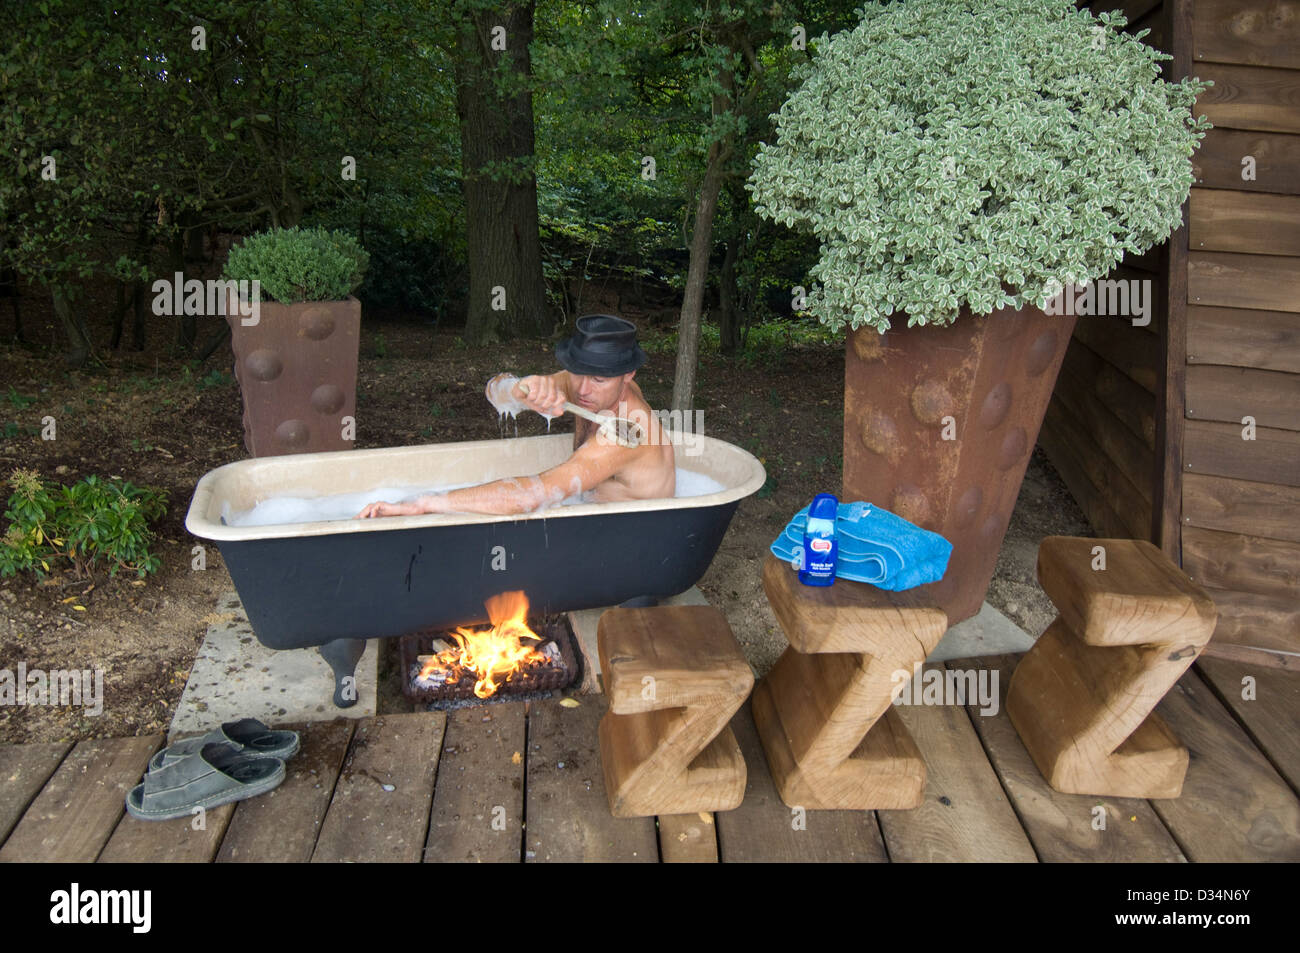 Man in outdoor bath heated by log fire Stock Photo ...